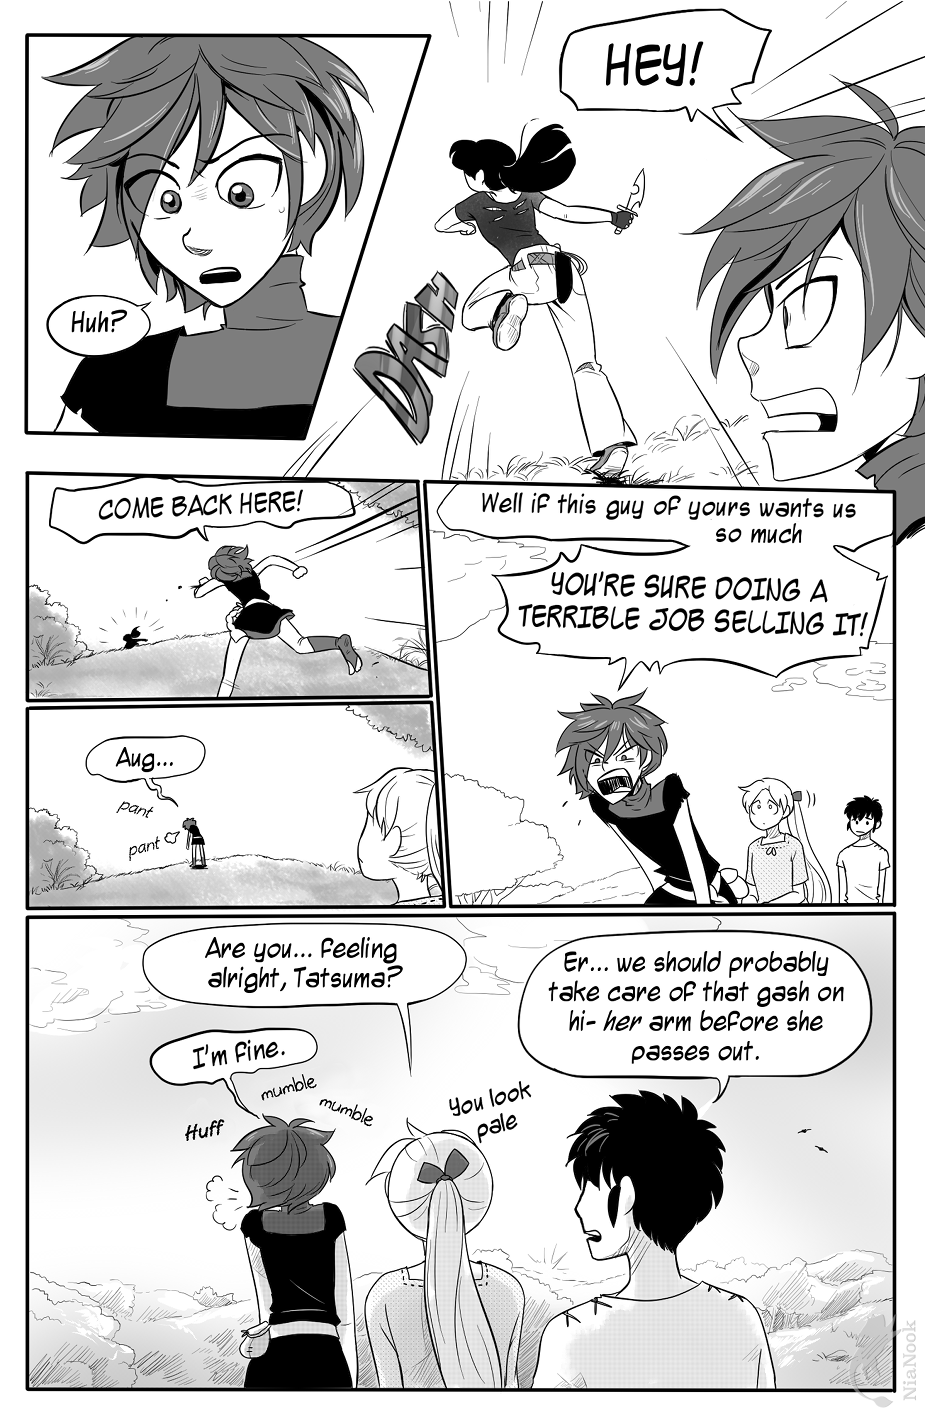 Page 26 (Book 2)